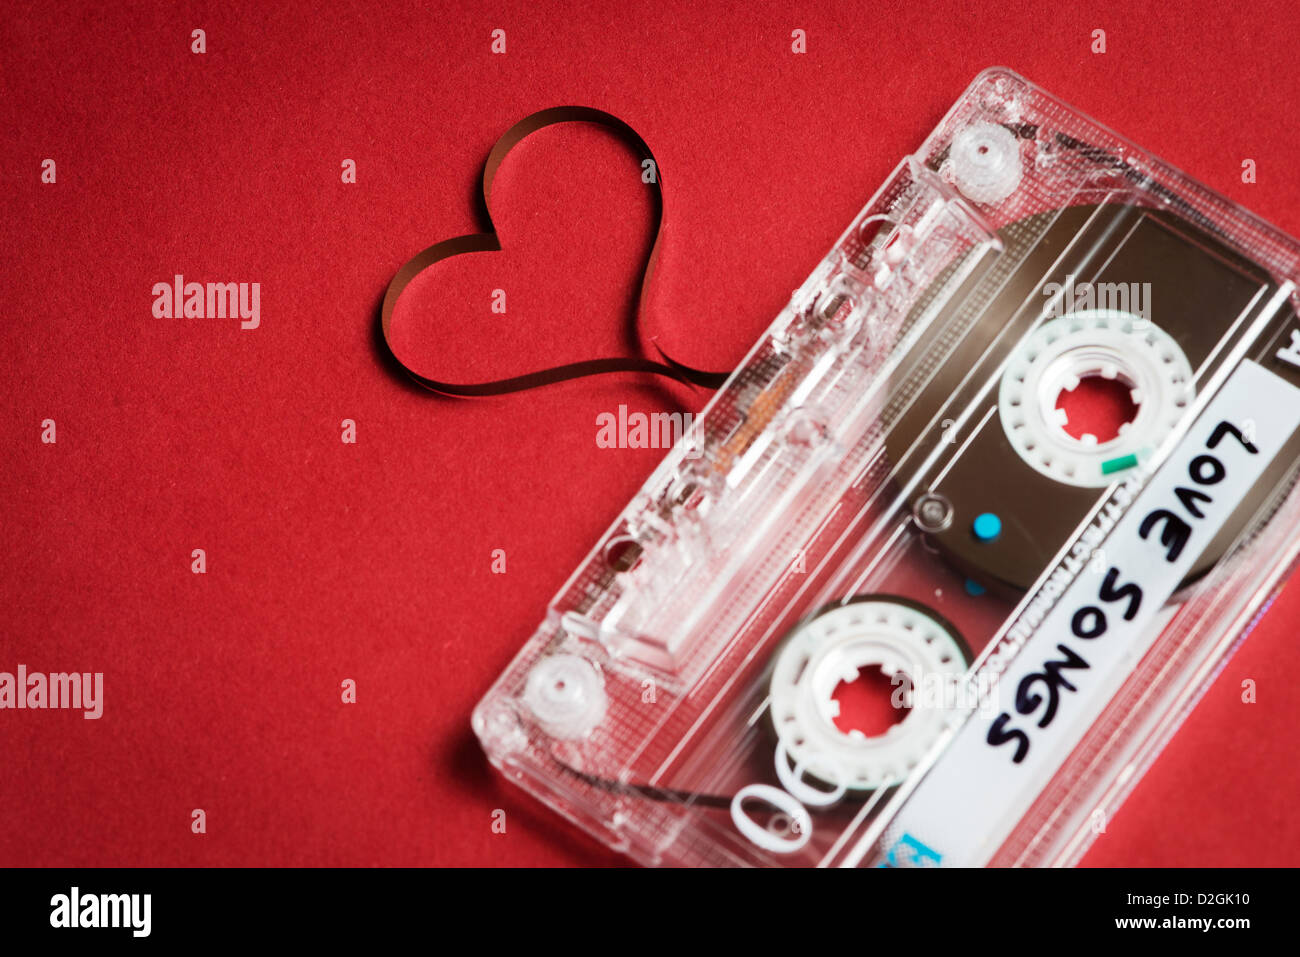 Valentine's day card template - audio cassette with magnetic tape in shape of heart on red background - Stock Image